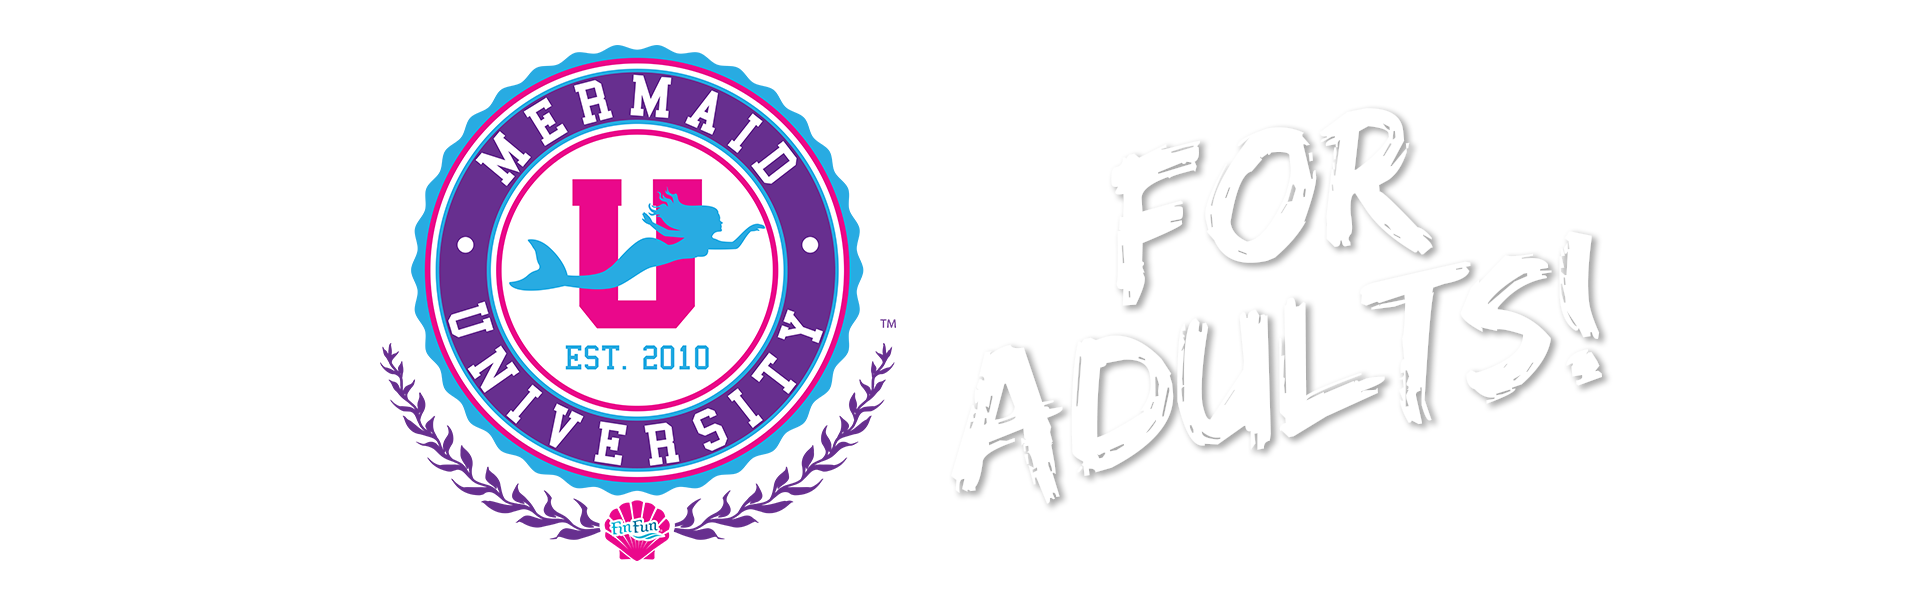 MU For Adults web banner.png